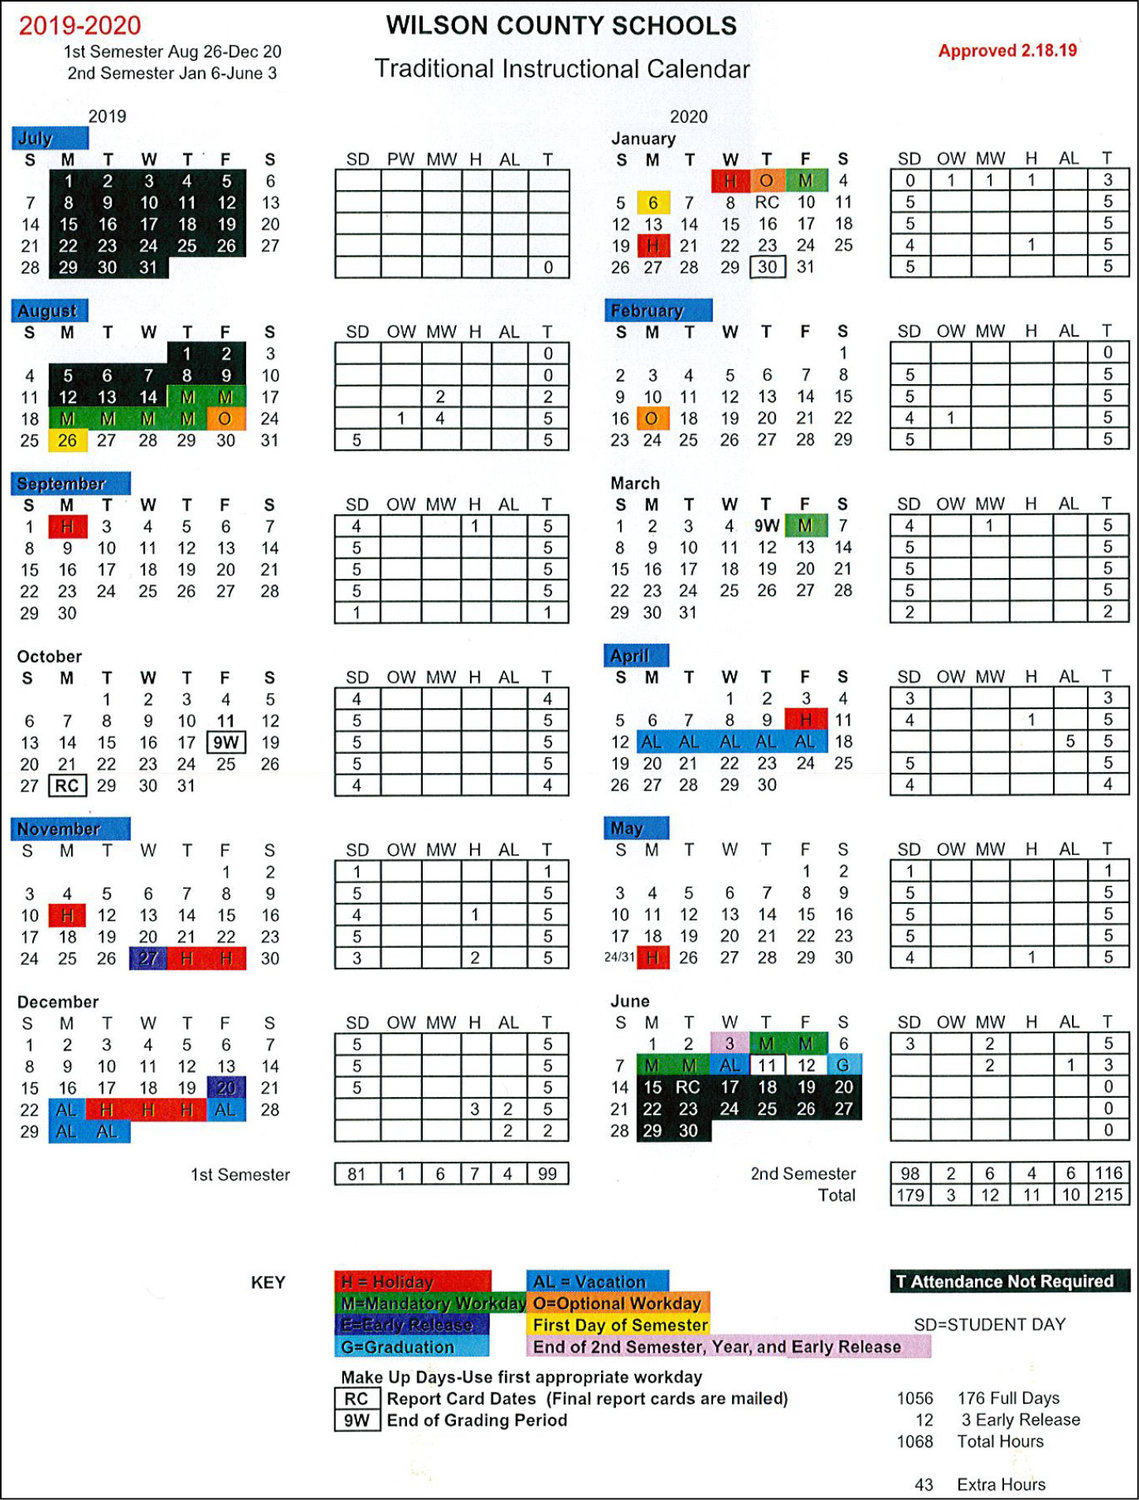 School Board Approves 2019-20 Calendars | The Wilson Times inside When Is Fall Break For Wilson County Schools